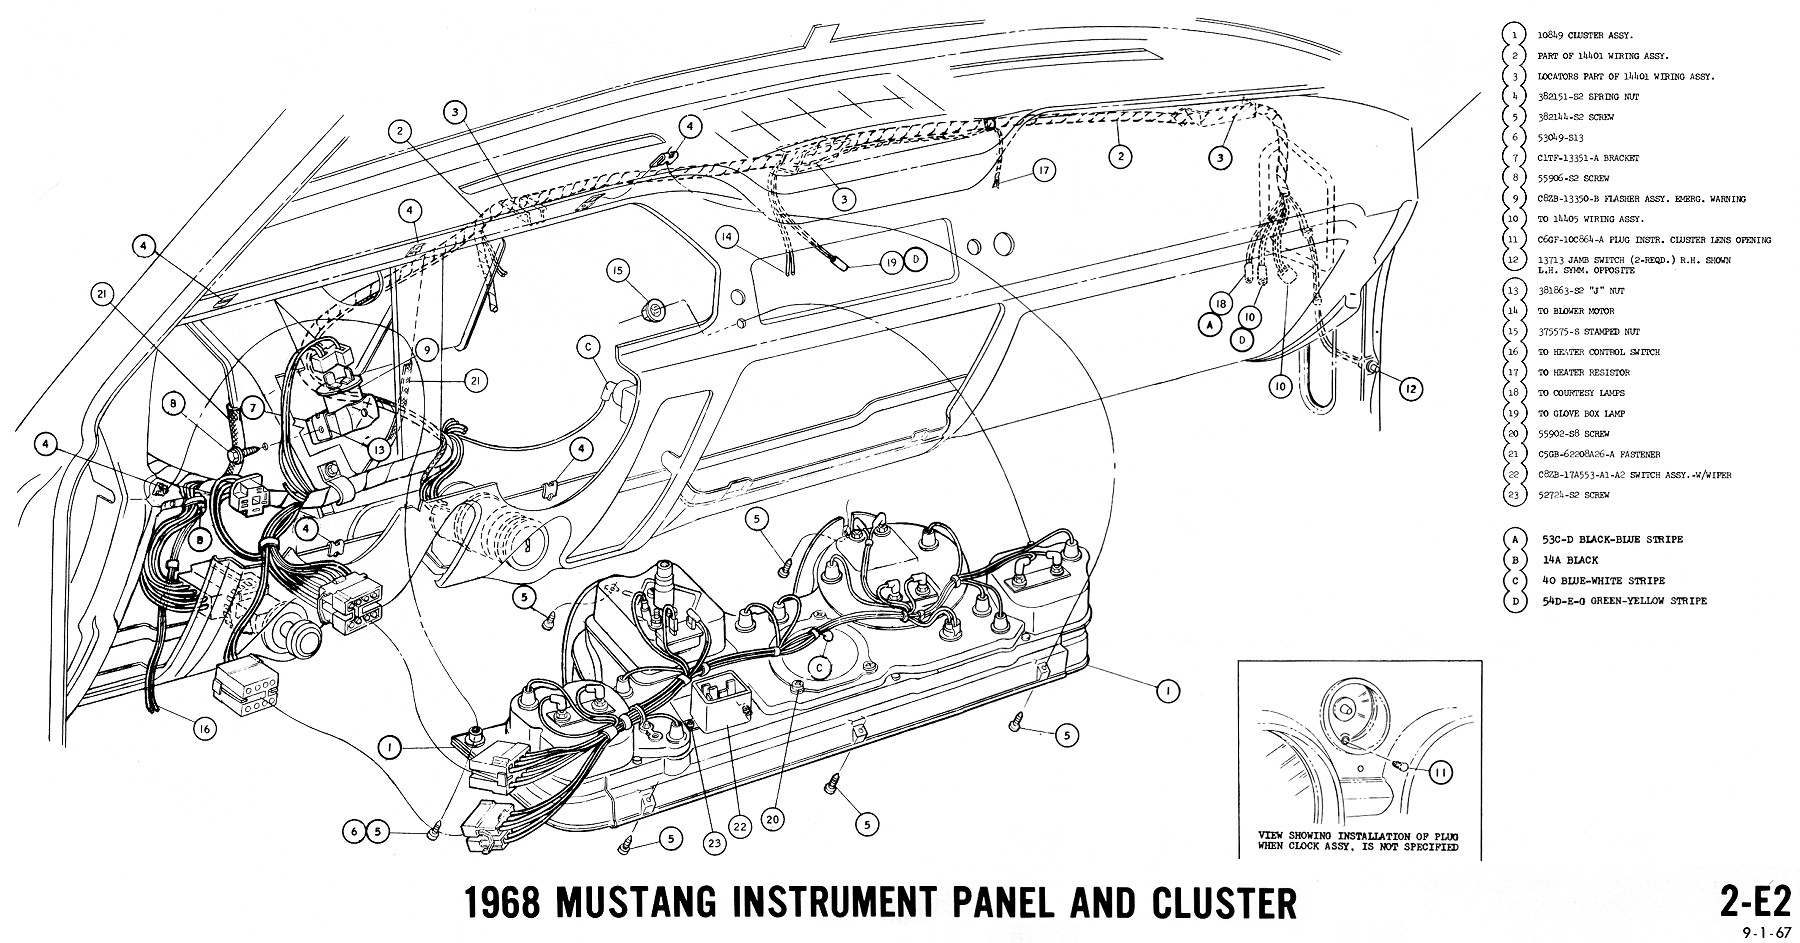 1968 Mustang Convertible Top Switch Wiring Diagram Wiring Diagram Component Component Consorziofiuggiturismo It